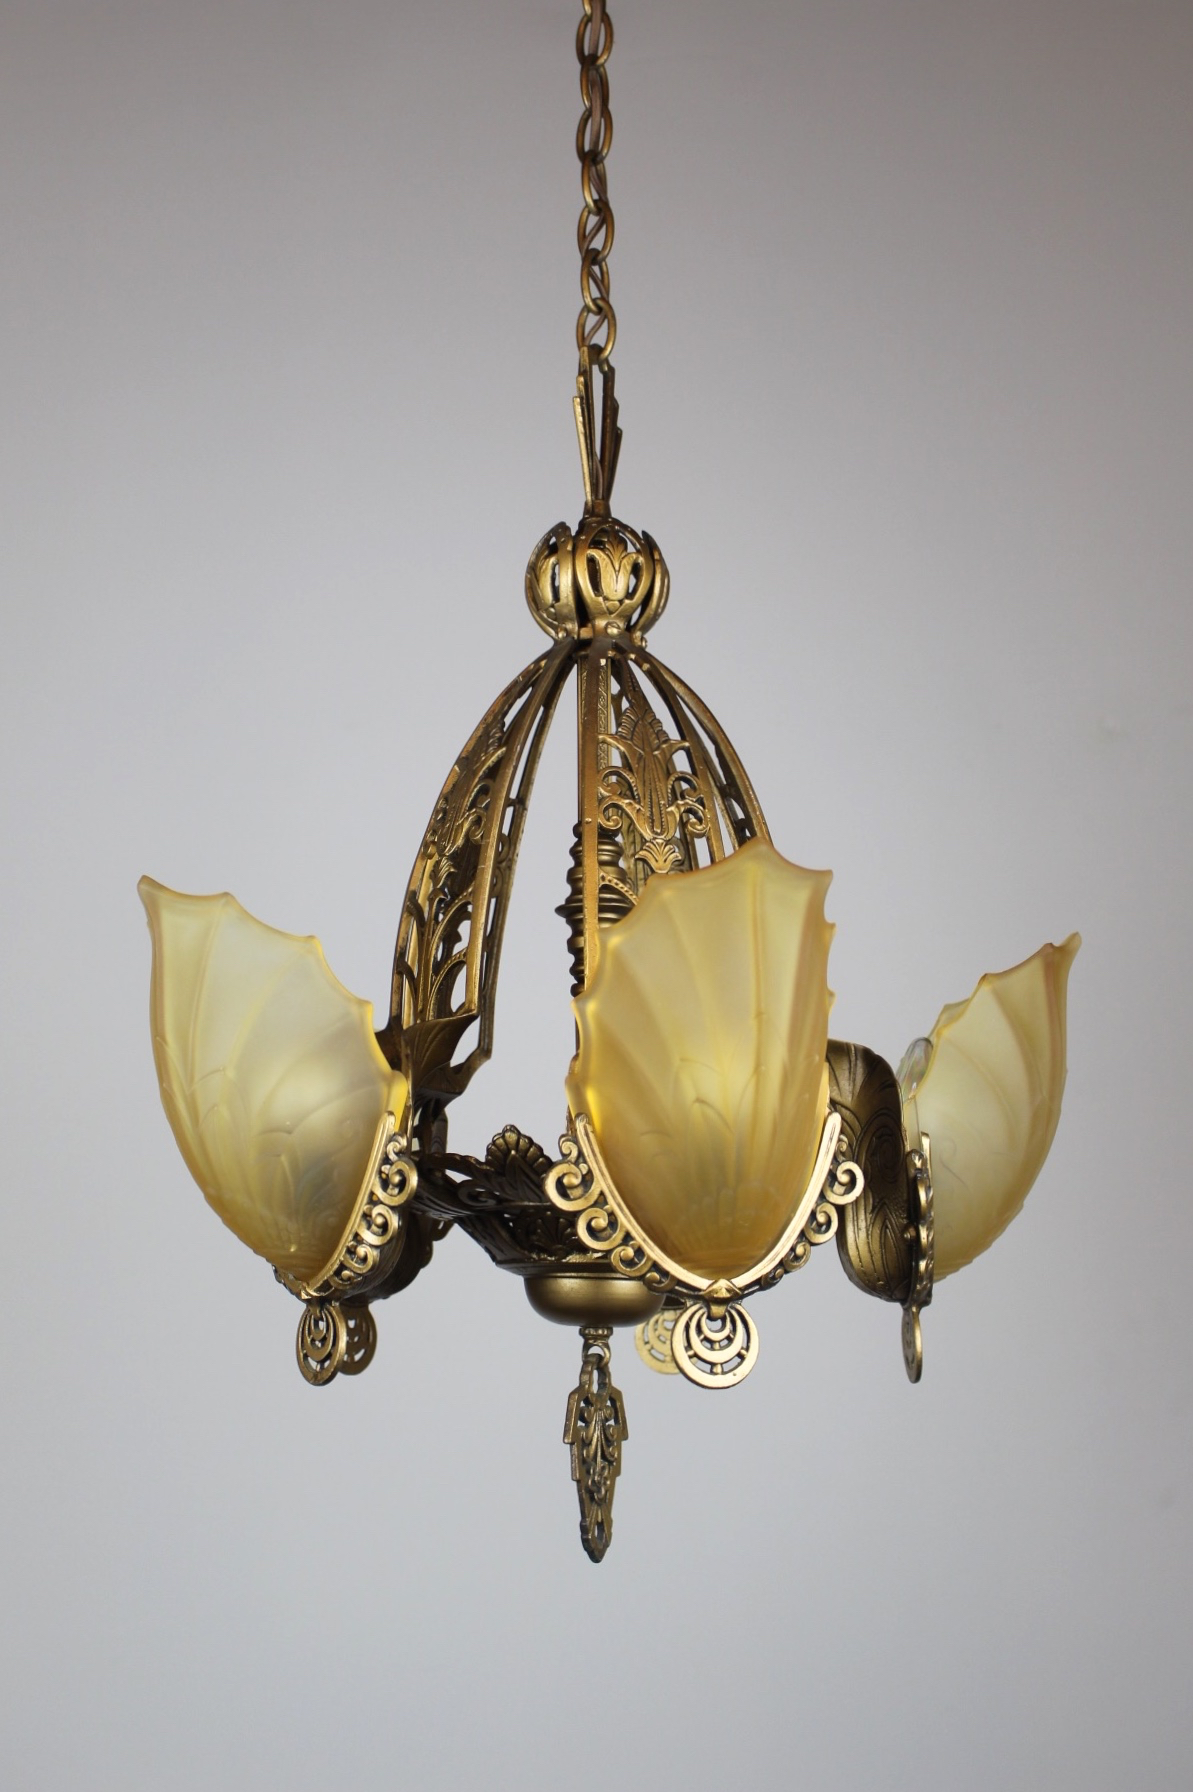 Original Art Deco Slip Shade Fixture 5 Light